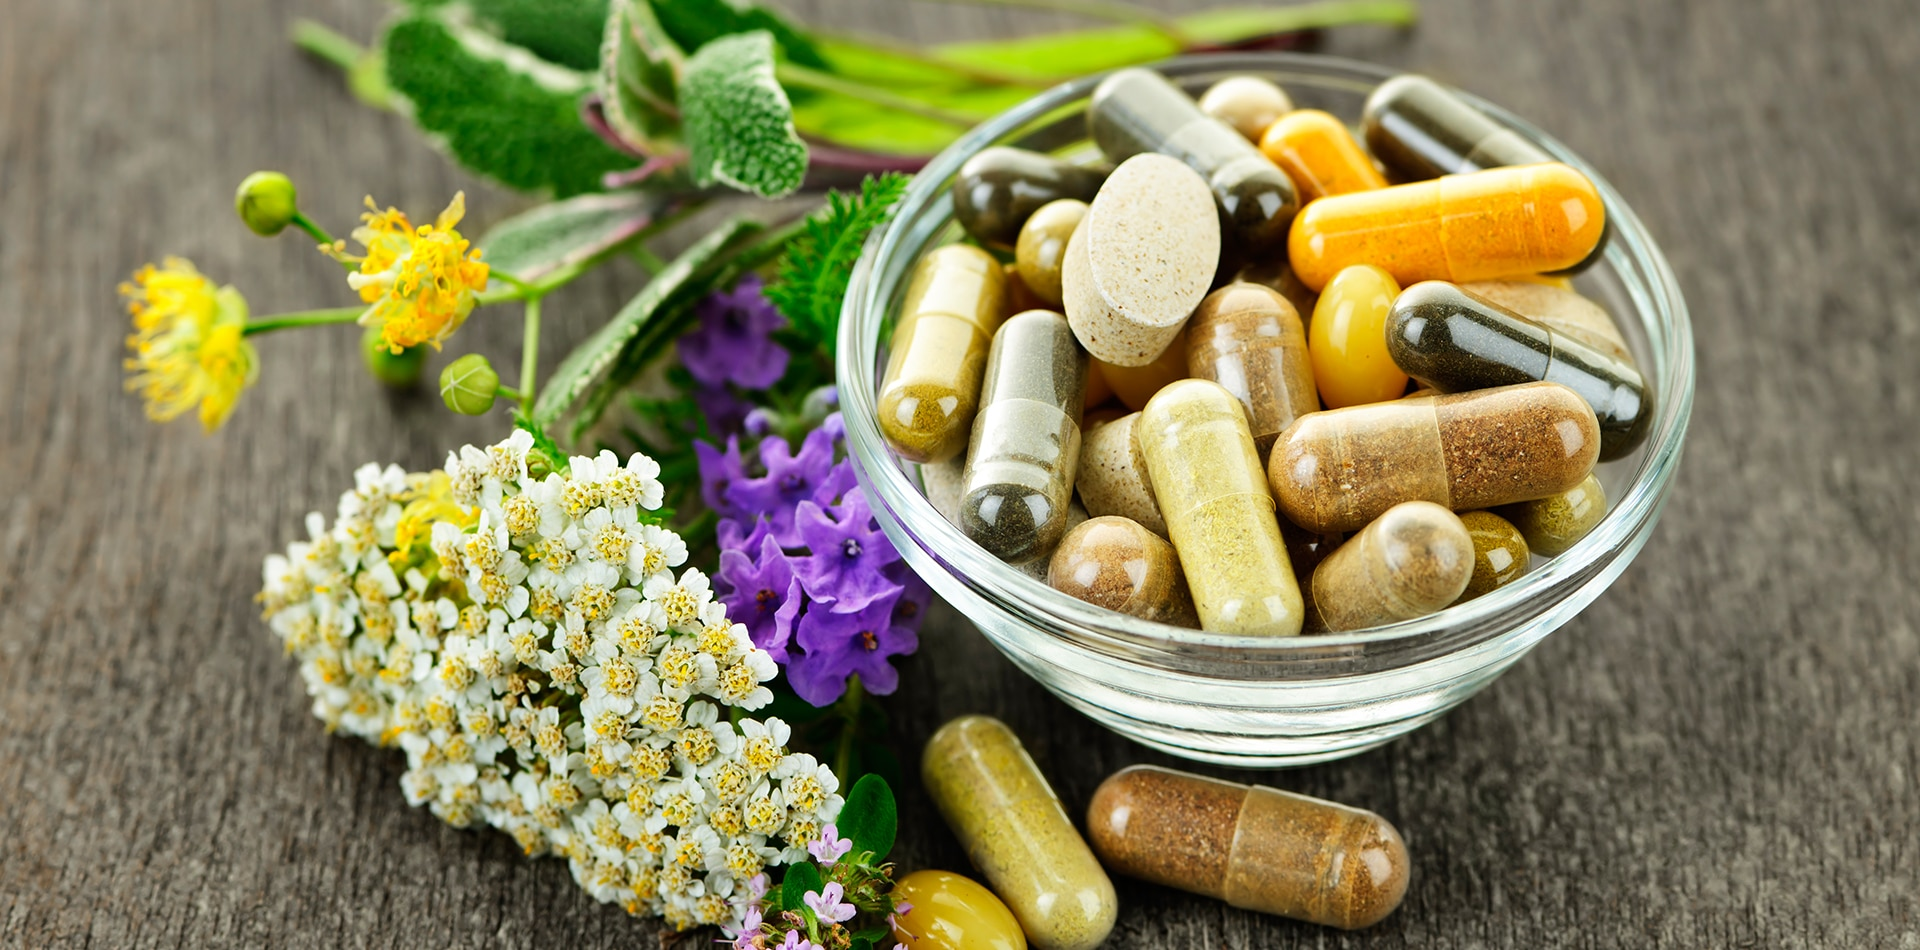 Natural supplements by The Healthy RD